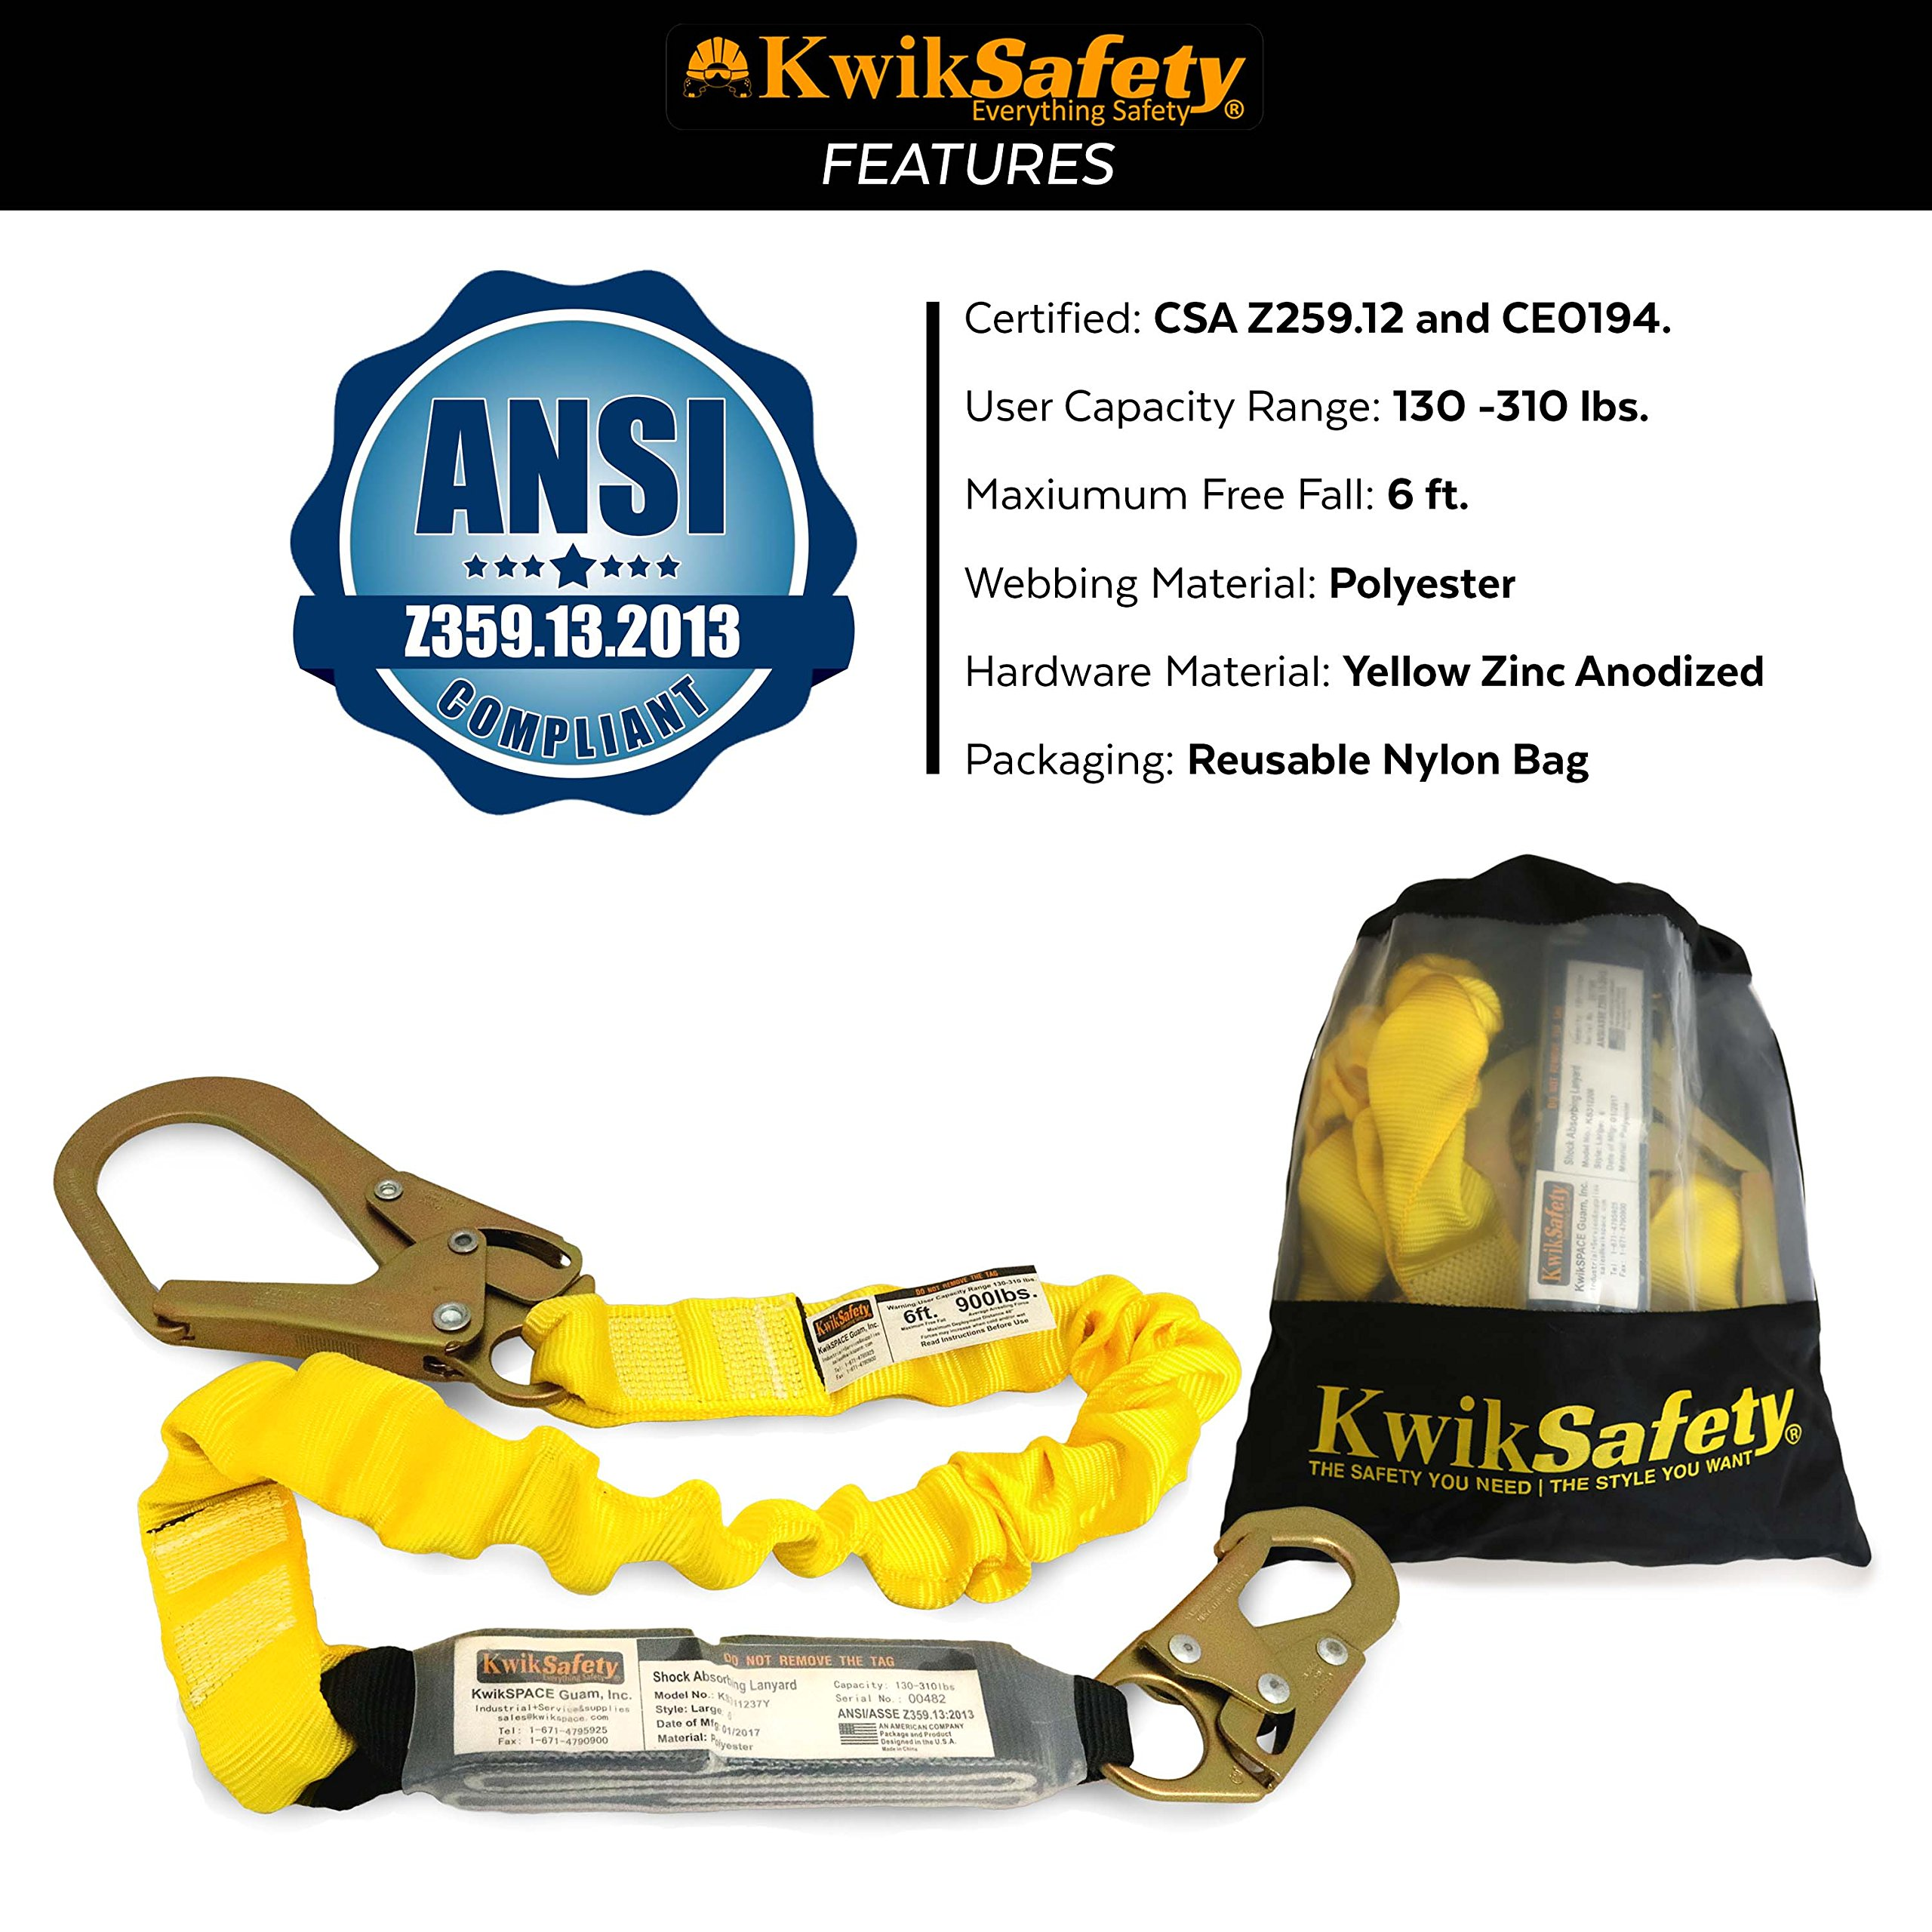 KwikSafety BOA | Single Leg 6ft Tubular Stretch Safety Lanyard | OSHA Approved ANSI Compliant Fall Protection | EXTERNAL Shock Absorber | Construction Arborist Roofing | Snap & Rebar Hook Connectors by KwikSafety (Image #7)